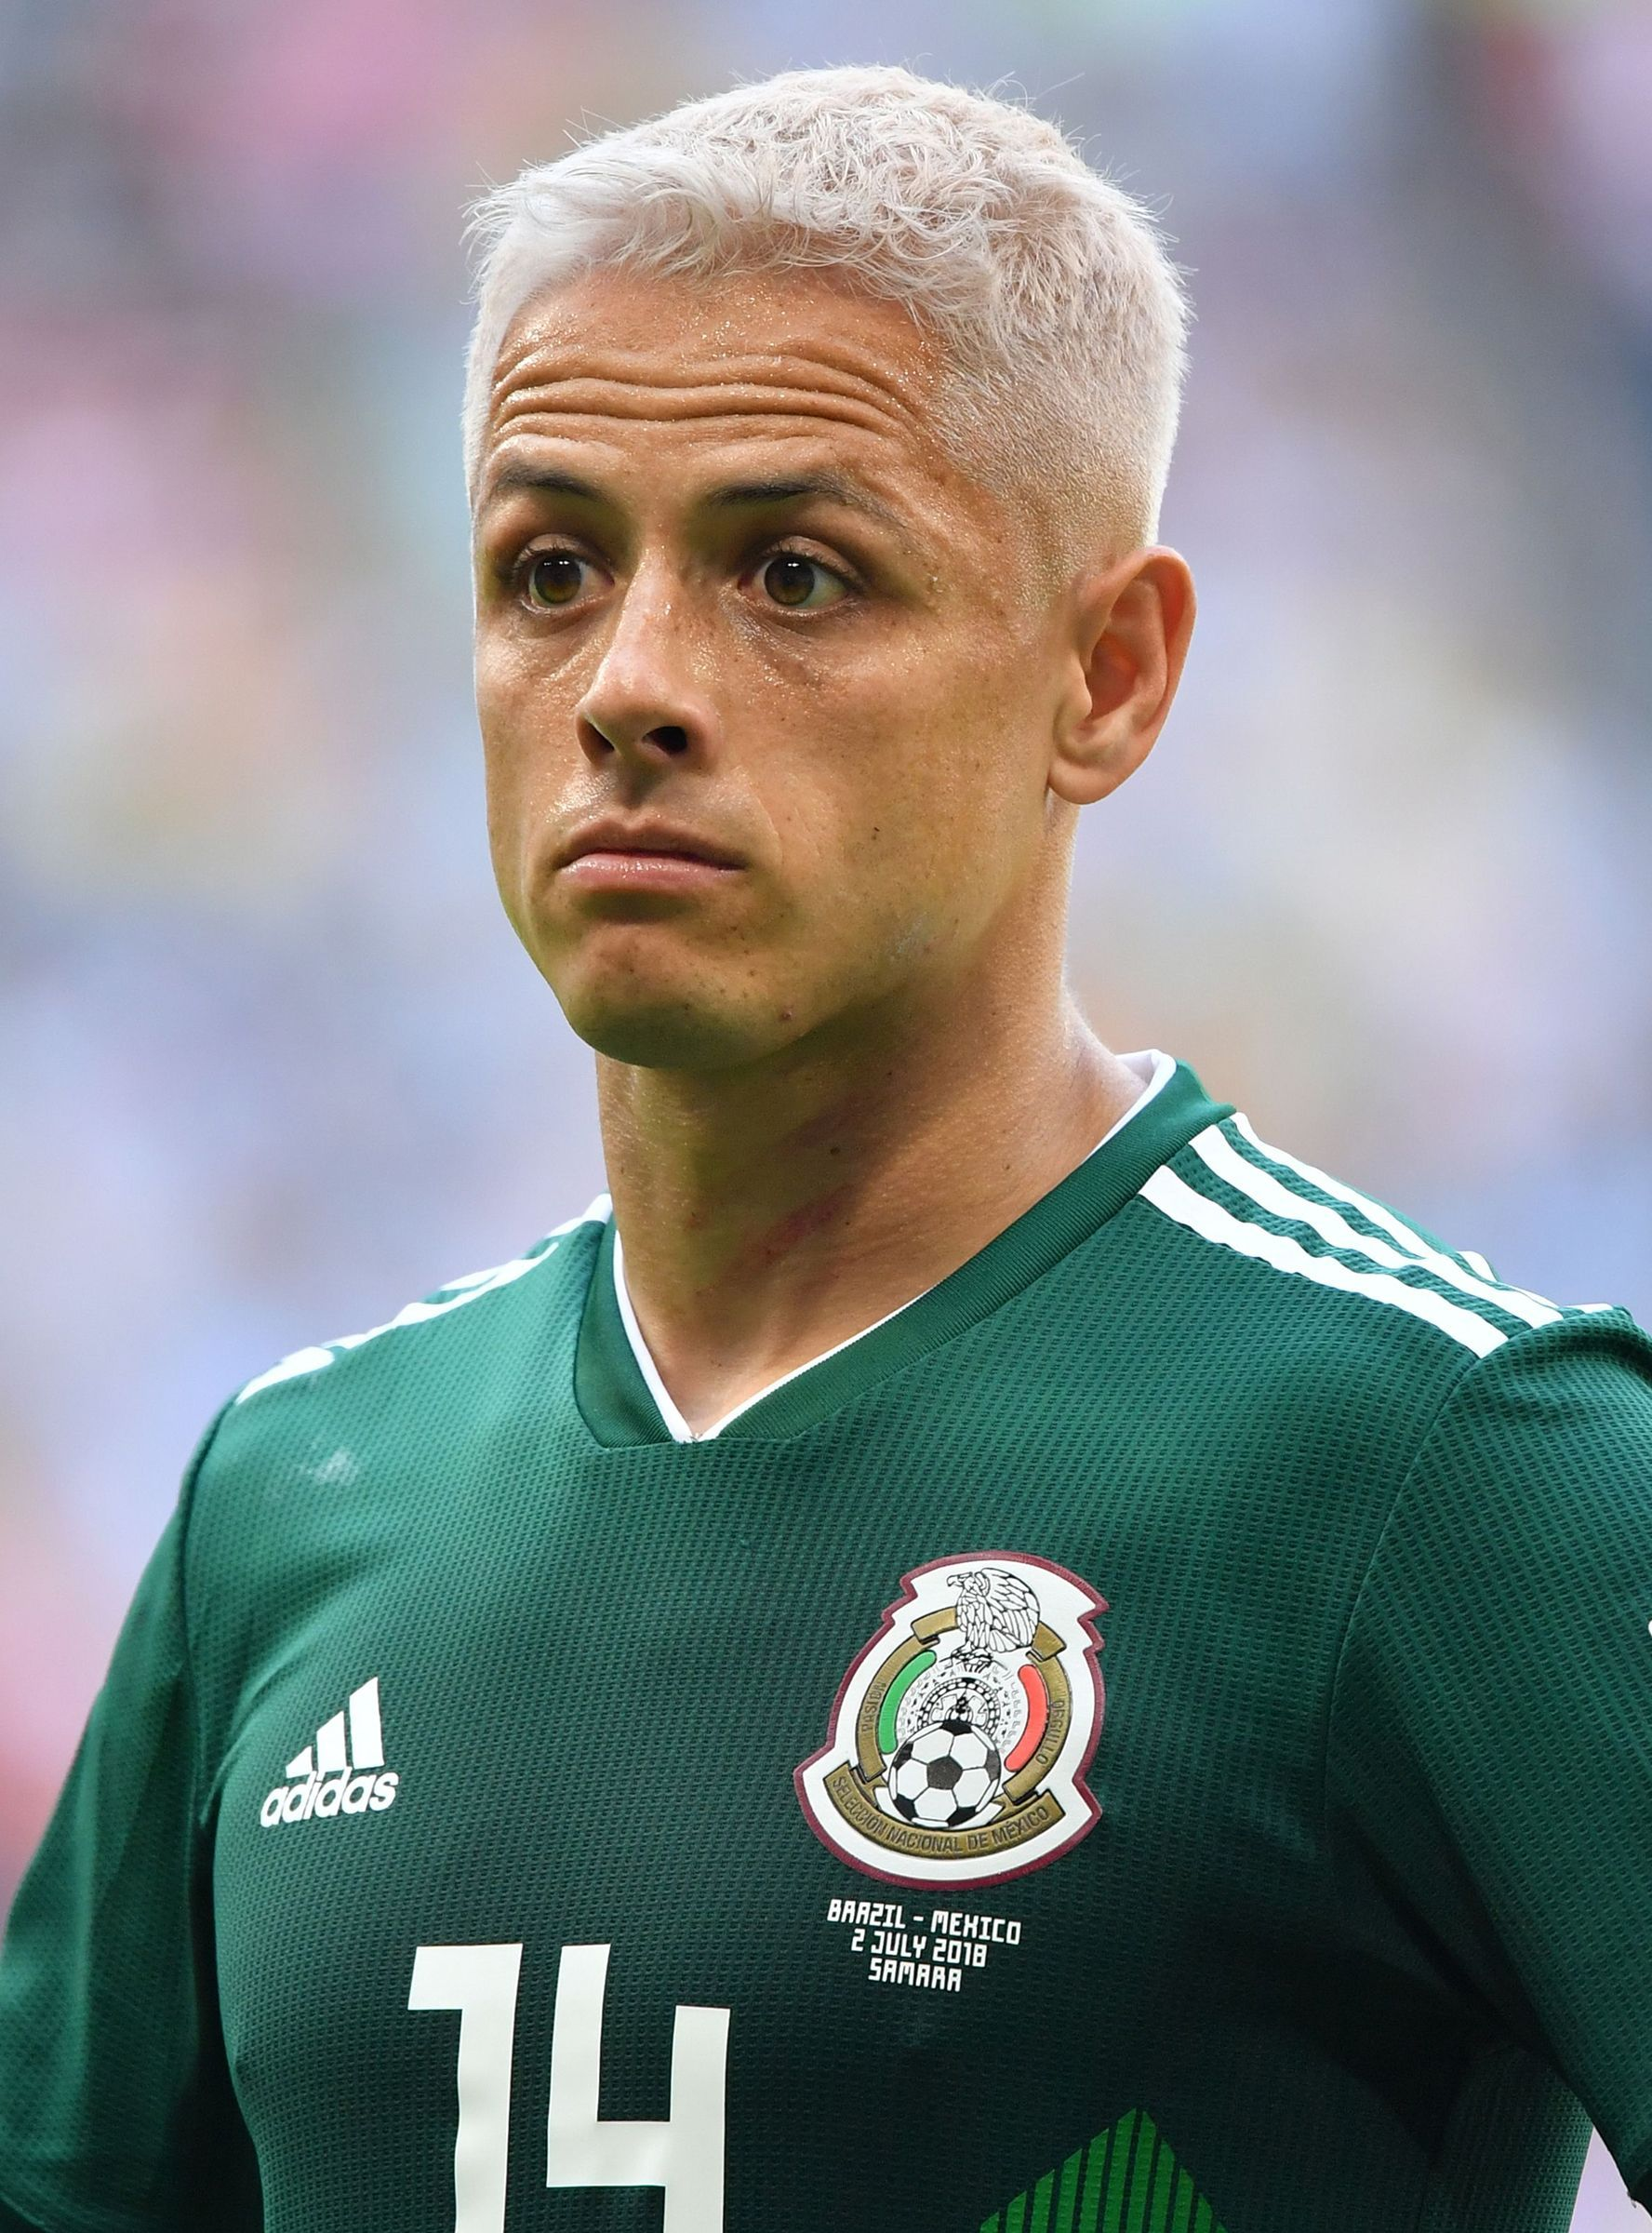 The Real Reason Soccer Players Bleach Their Hair For The World Cup